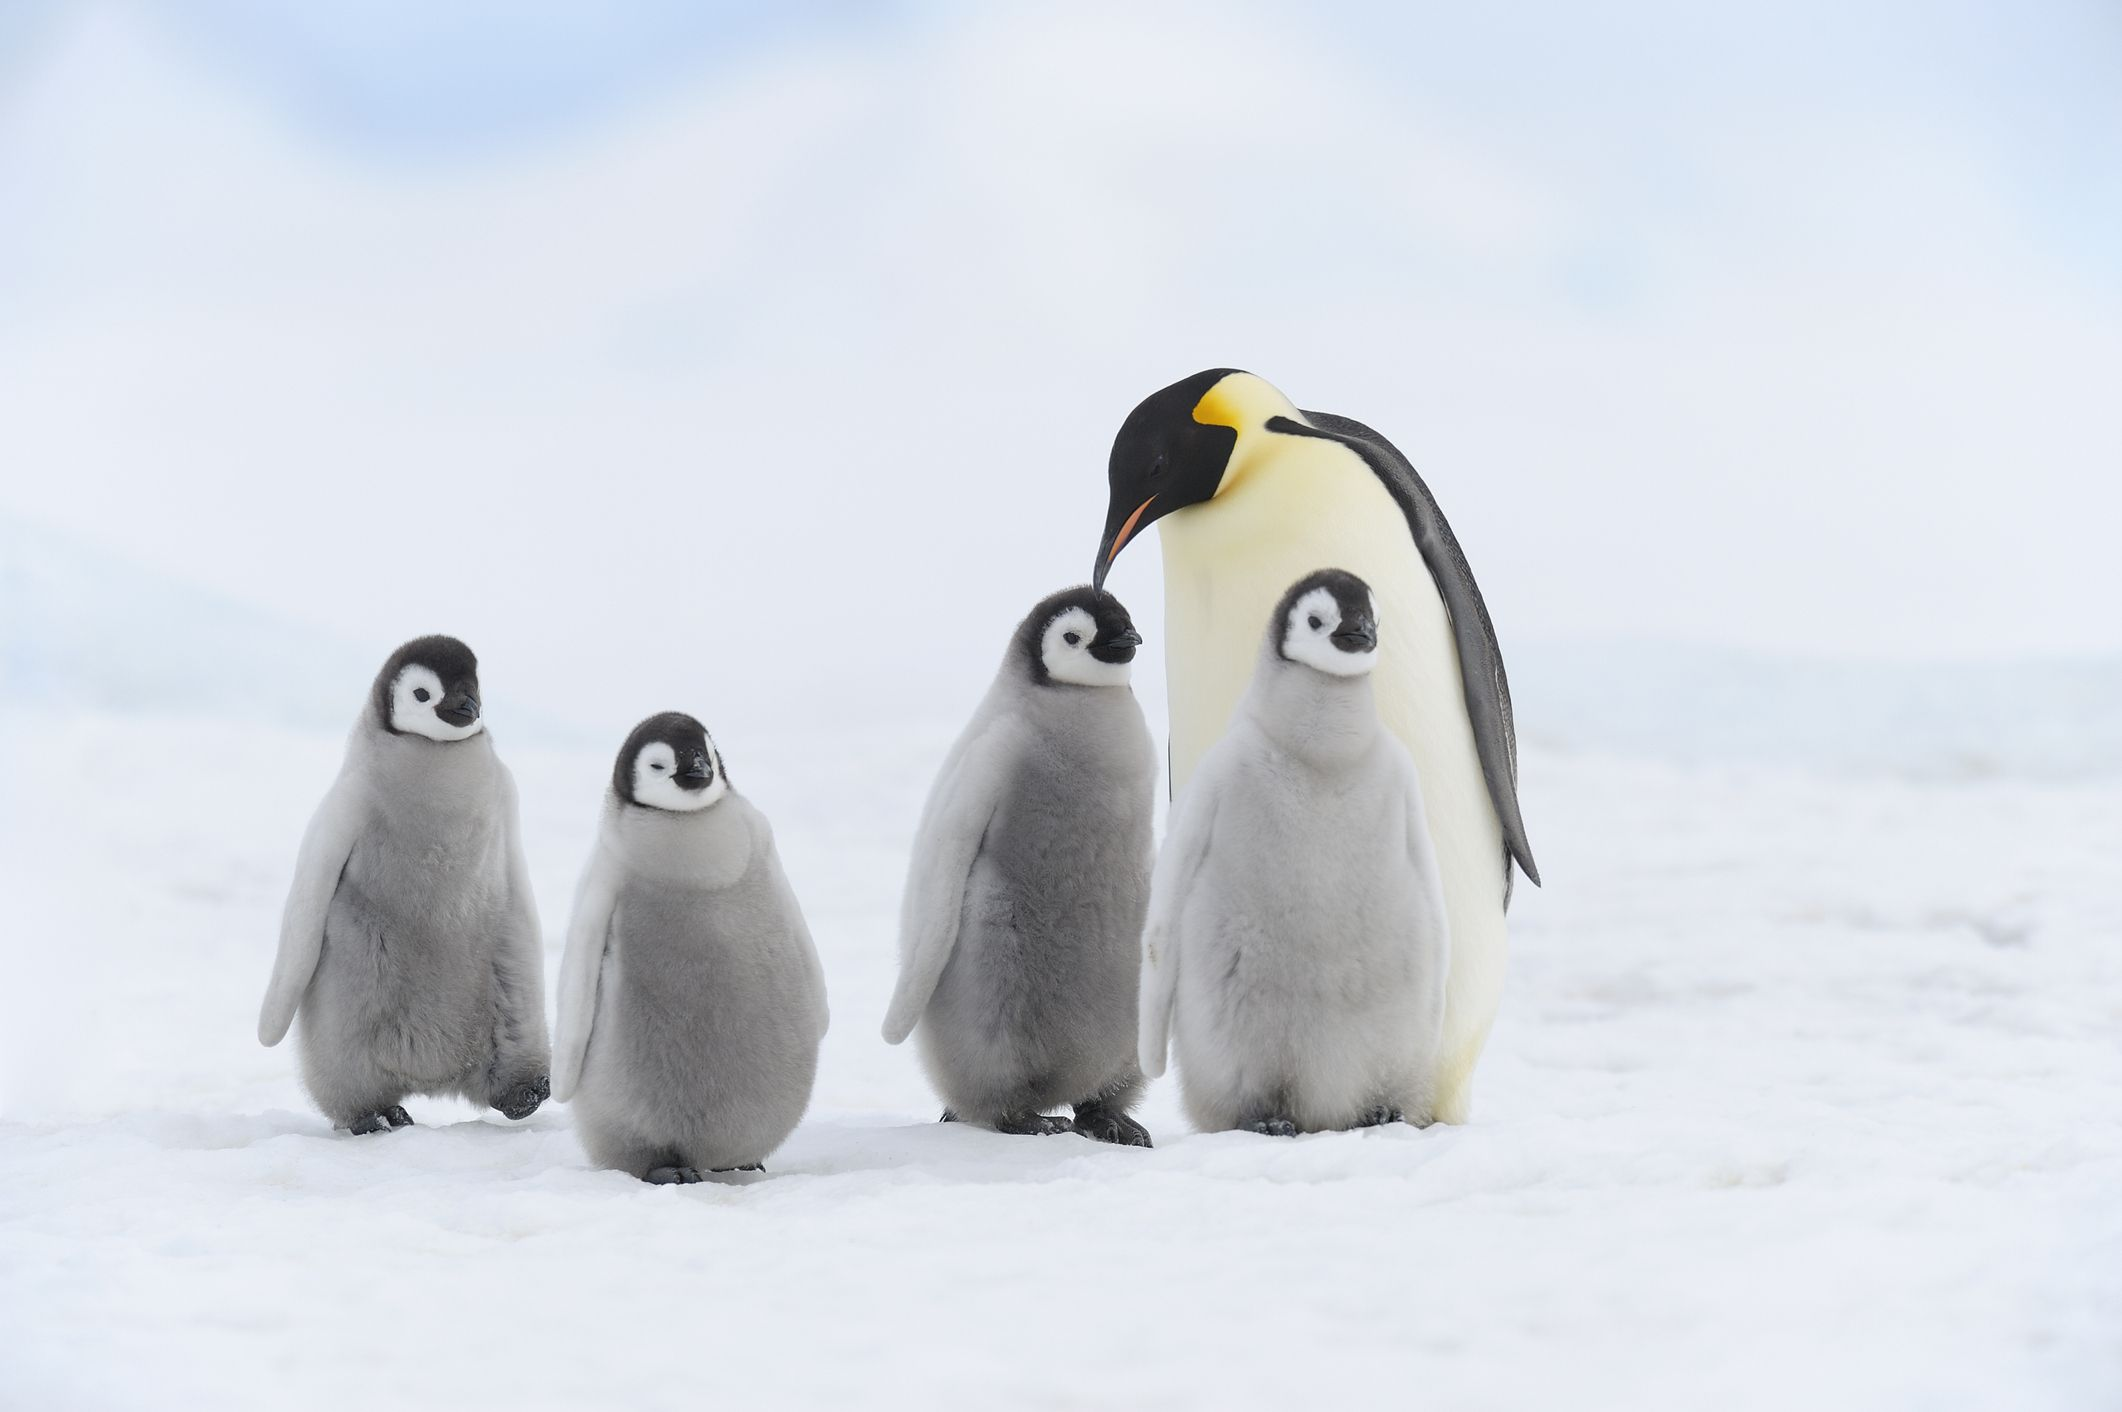 An adult emperor penguin and four chicks standing on the snow